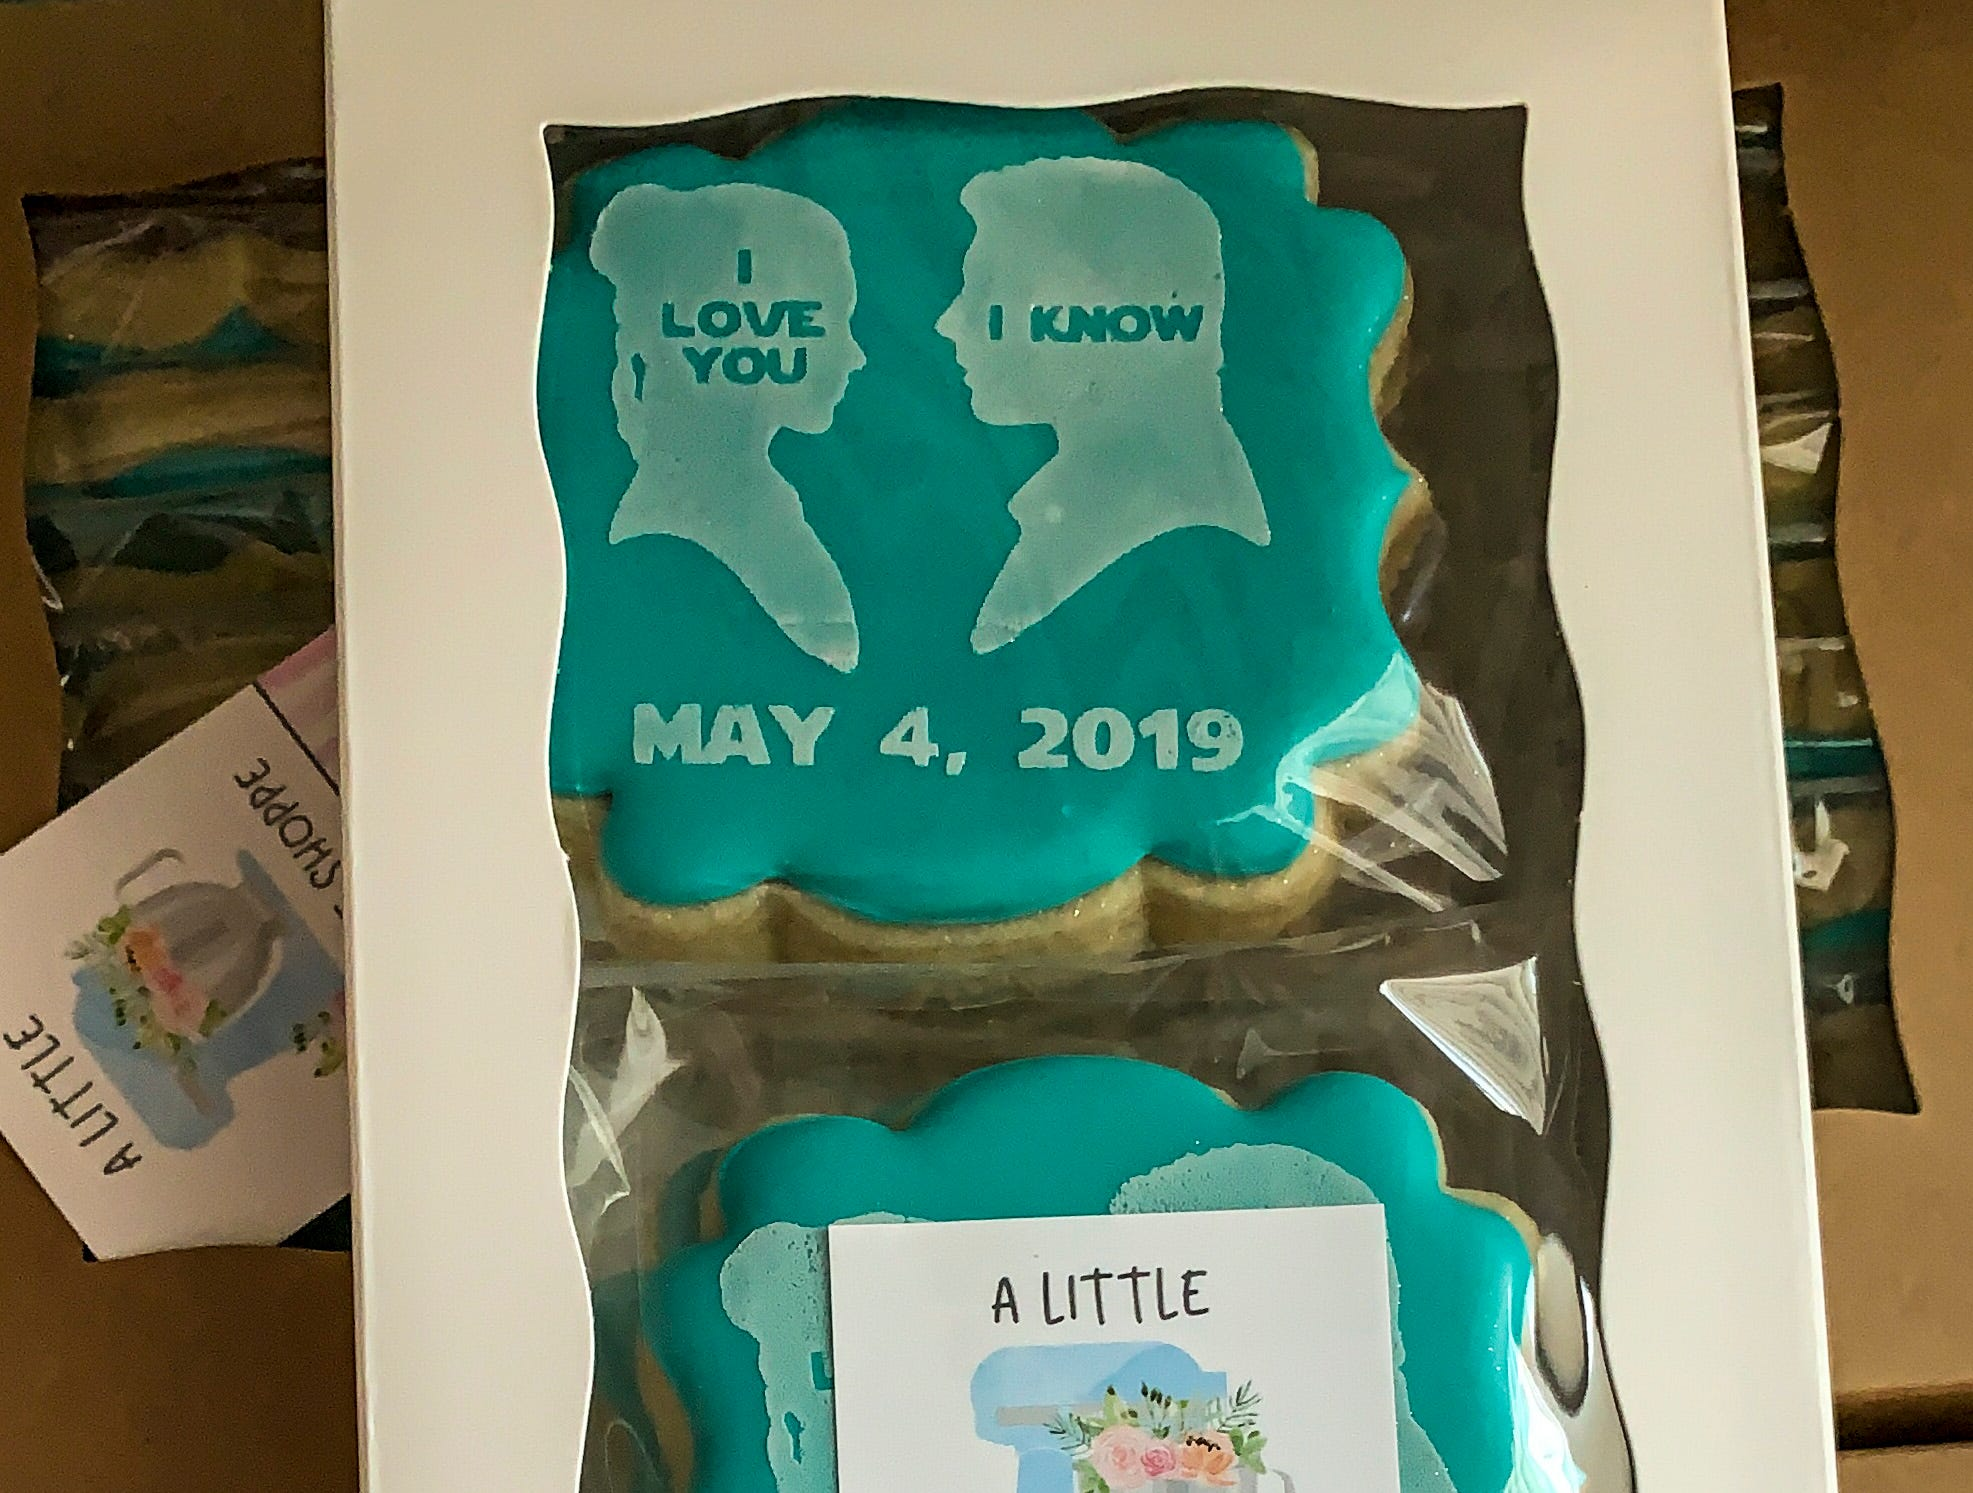 """Amanda Arrington operates """"A Little Cookie Shoppe"""" from her home near the village of Estero.  She bakes and decorates unique, custom cookies for different occasions. She's also a mom with six kids. April 30, 2019. Cookies for a wedding on May 4th to give as favors."""